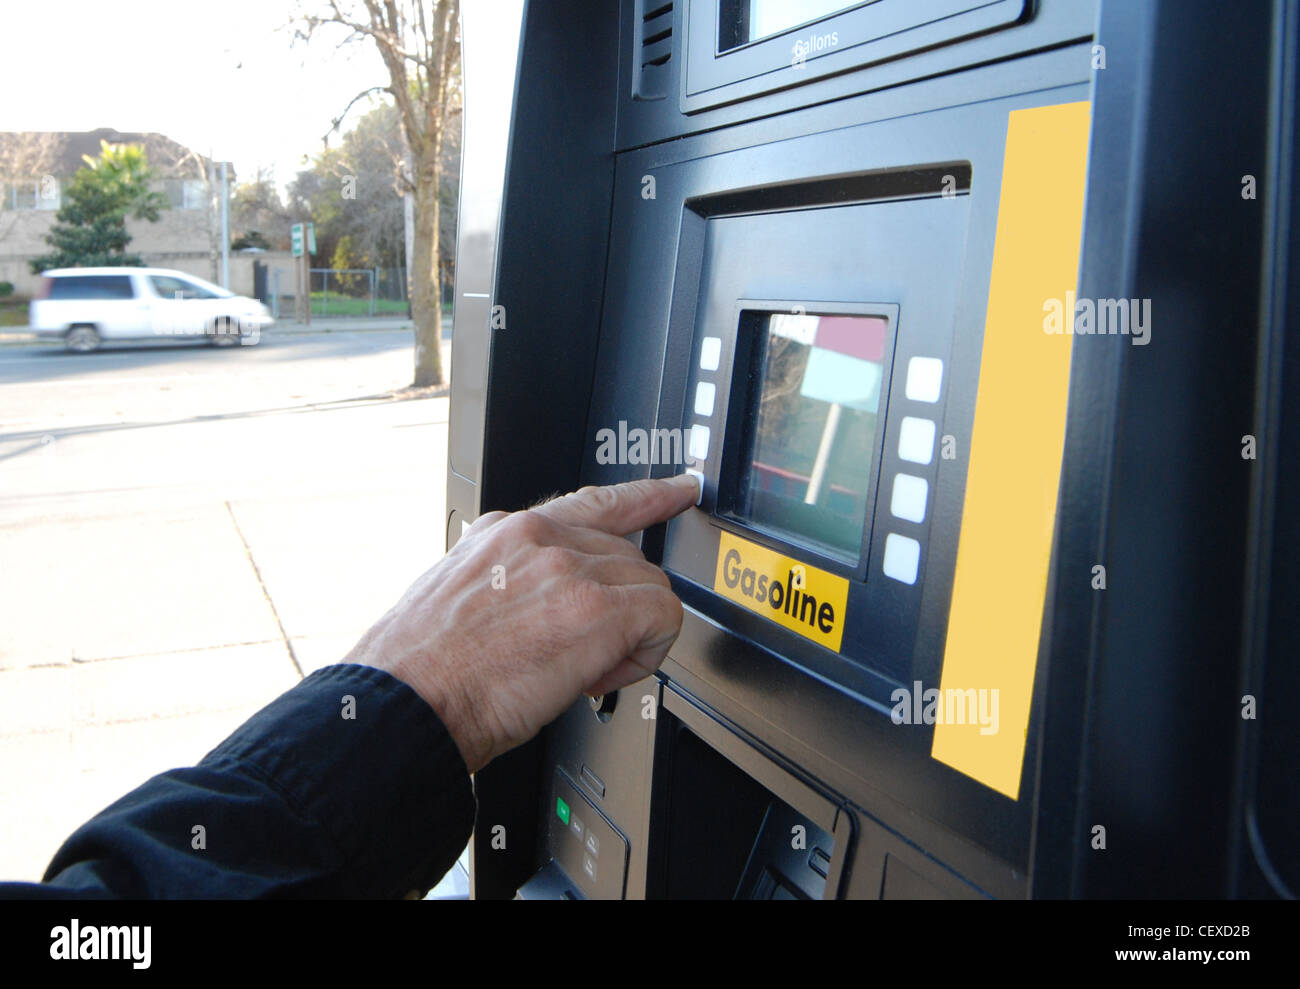 Close up of customer's hand pushing buttons on a gasoline fuel pump - Stock Image